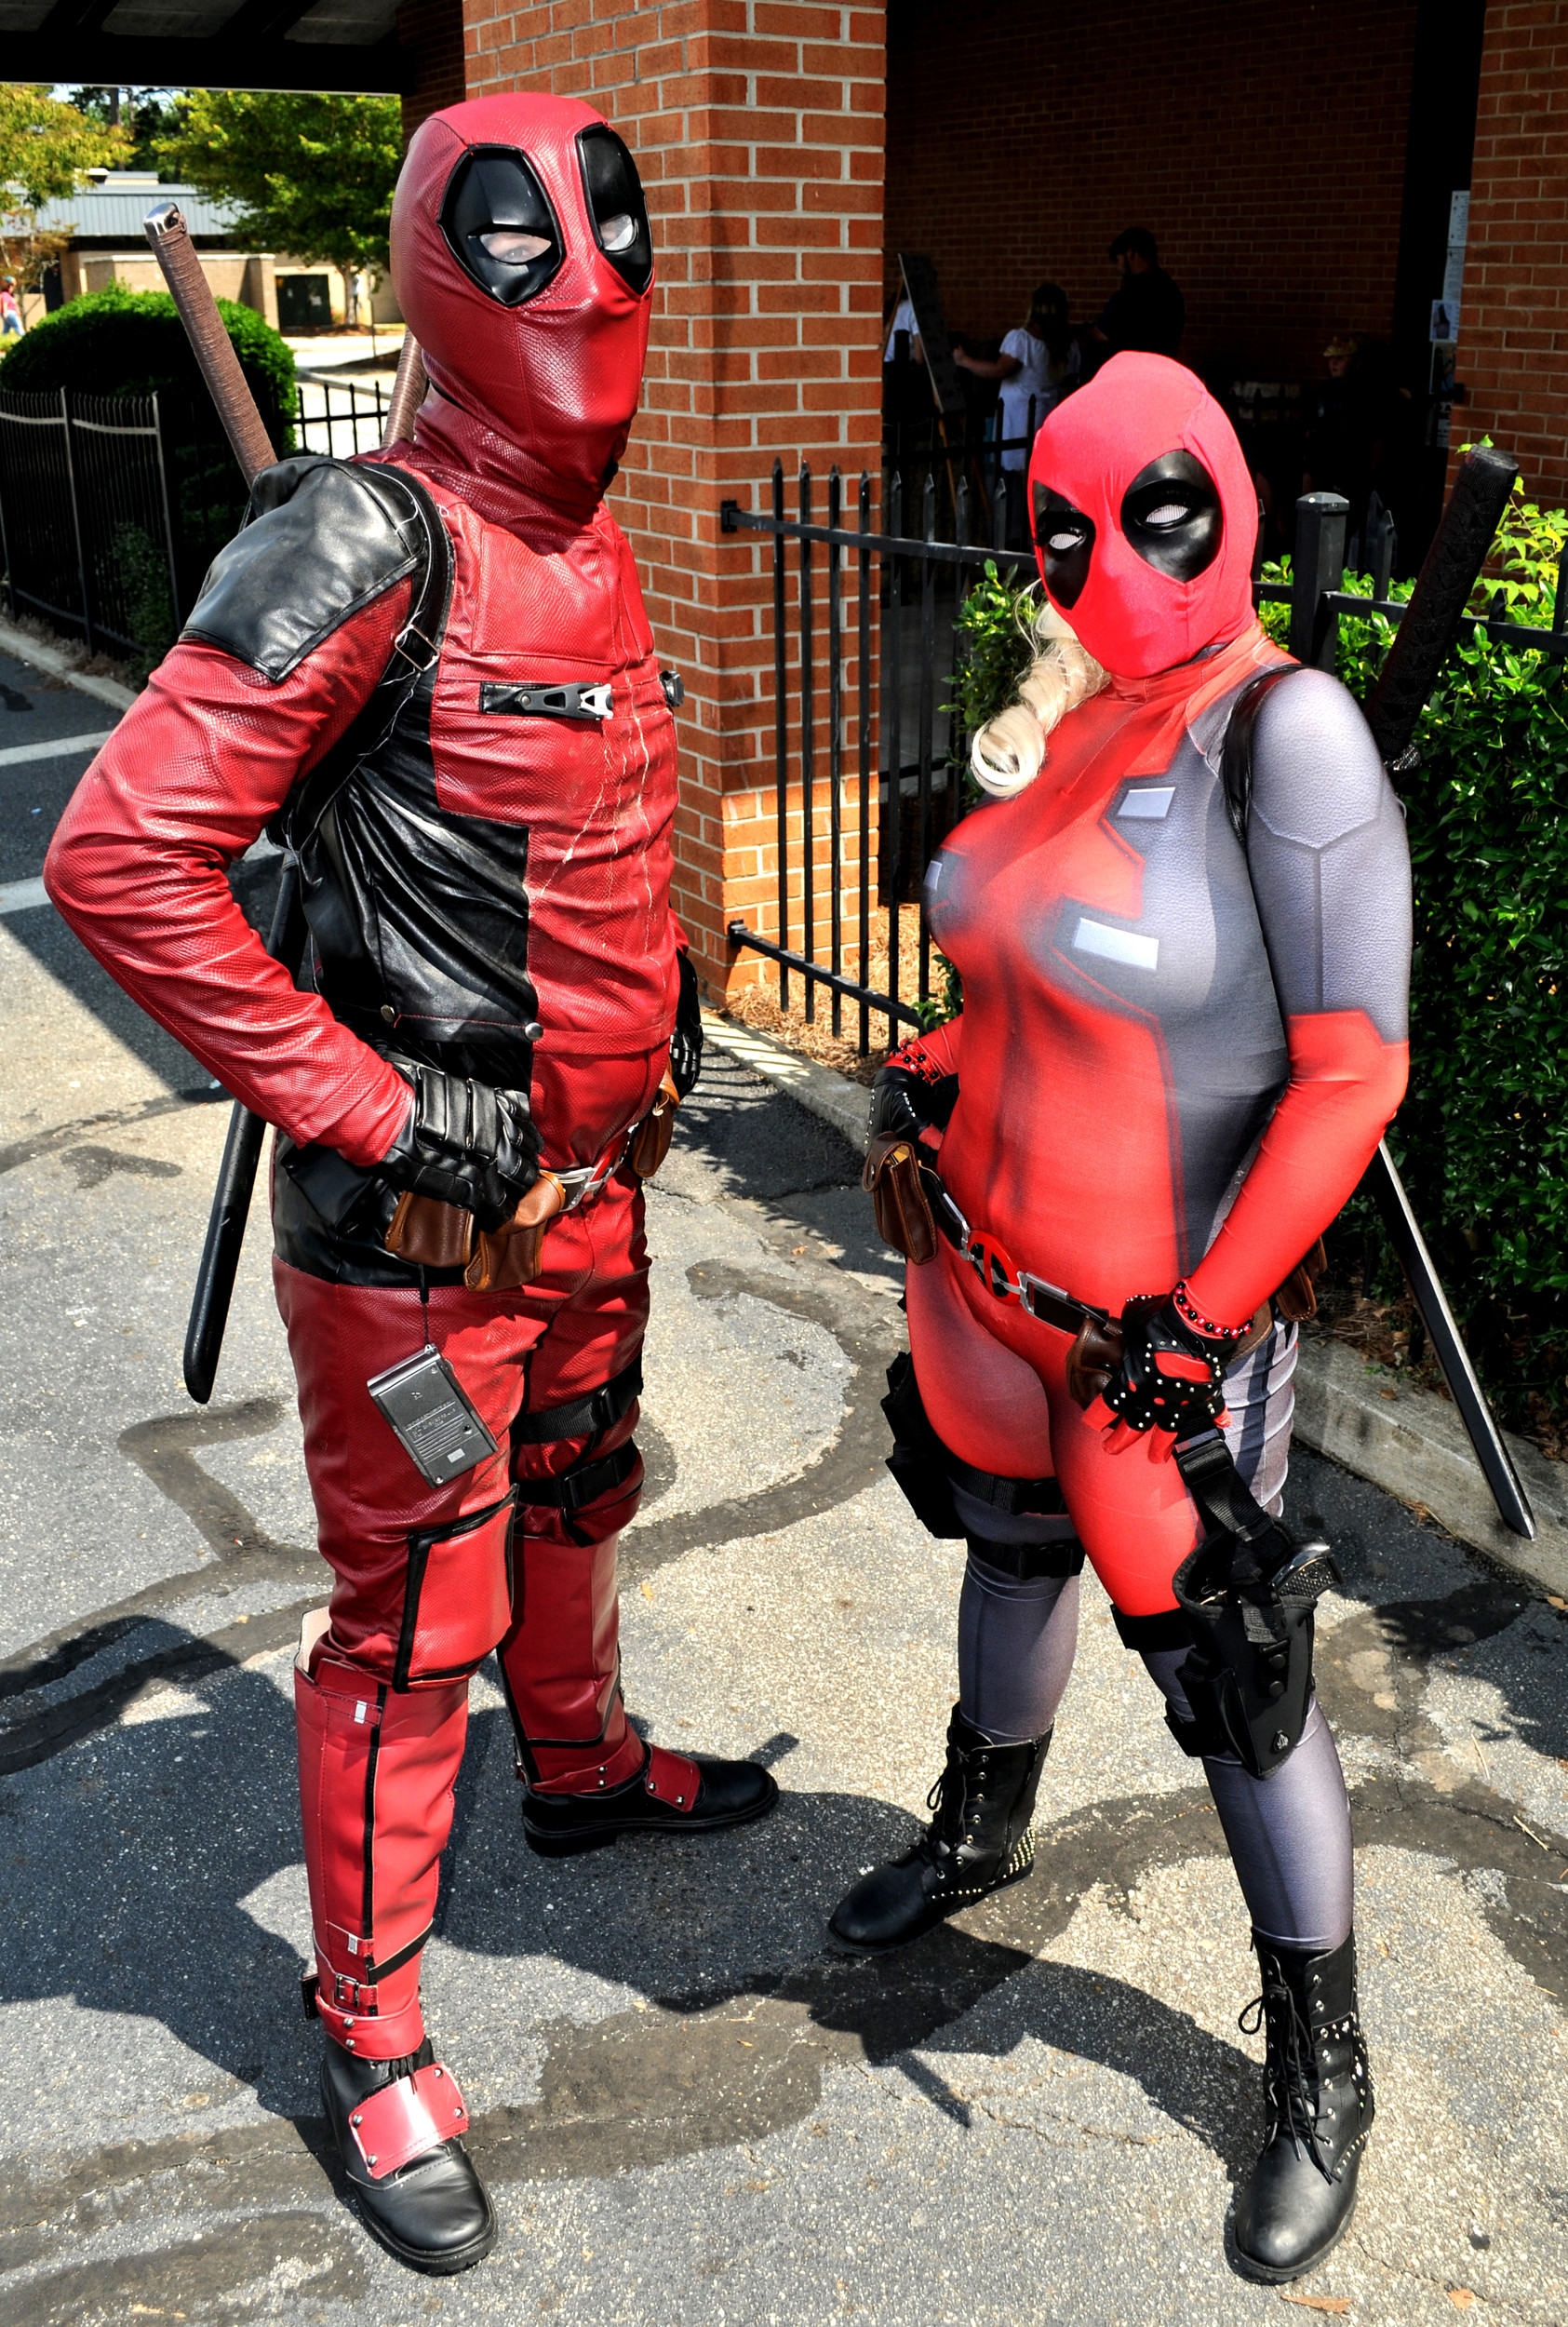 Deadpool and Lady Deadpool were on hand for the 2017 Cartersville Comic, Horror and Toy Expo at the Cartersville Civic Center. Renamed Cartersville Comic Con, the event will be presented Saturday at the Clarence Brown Conference Center.